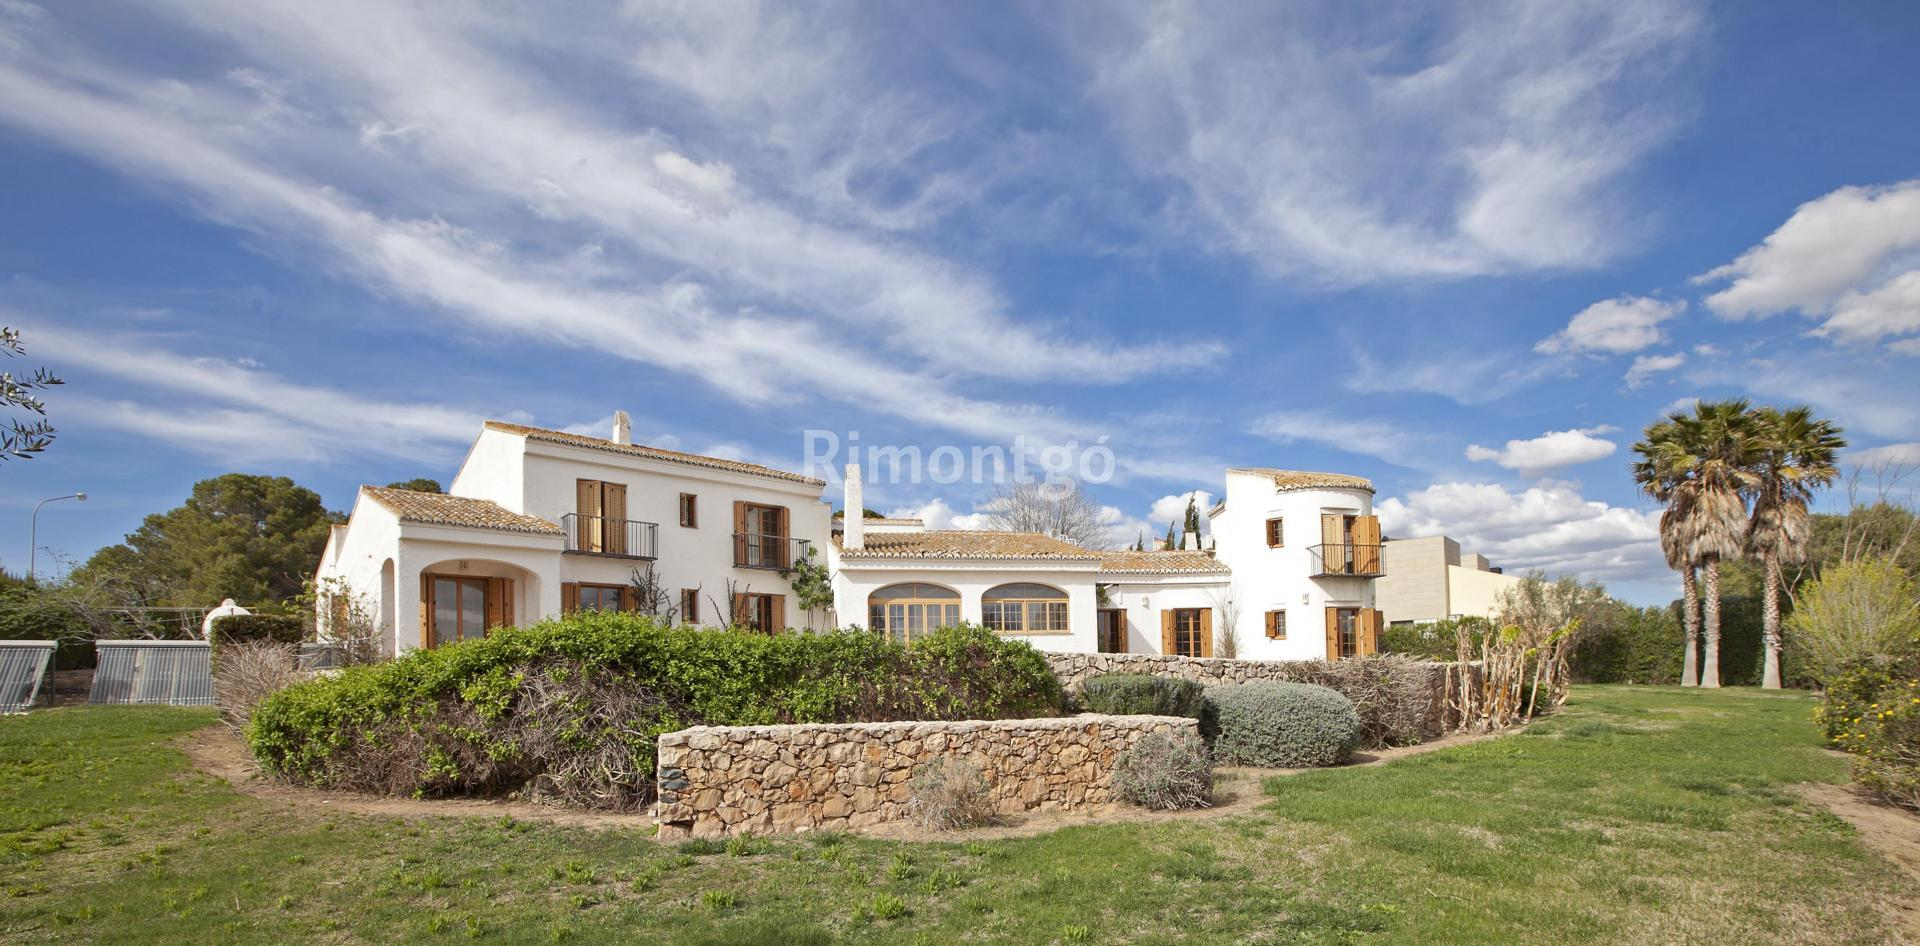 Luxury villa for sale in El Bosque, Chiva, Valencia